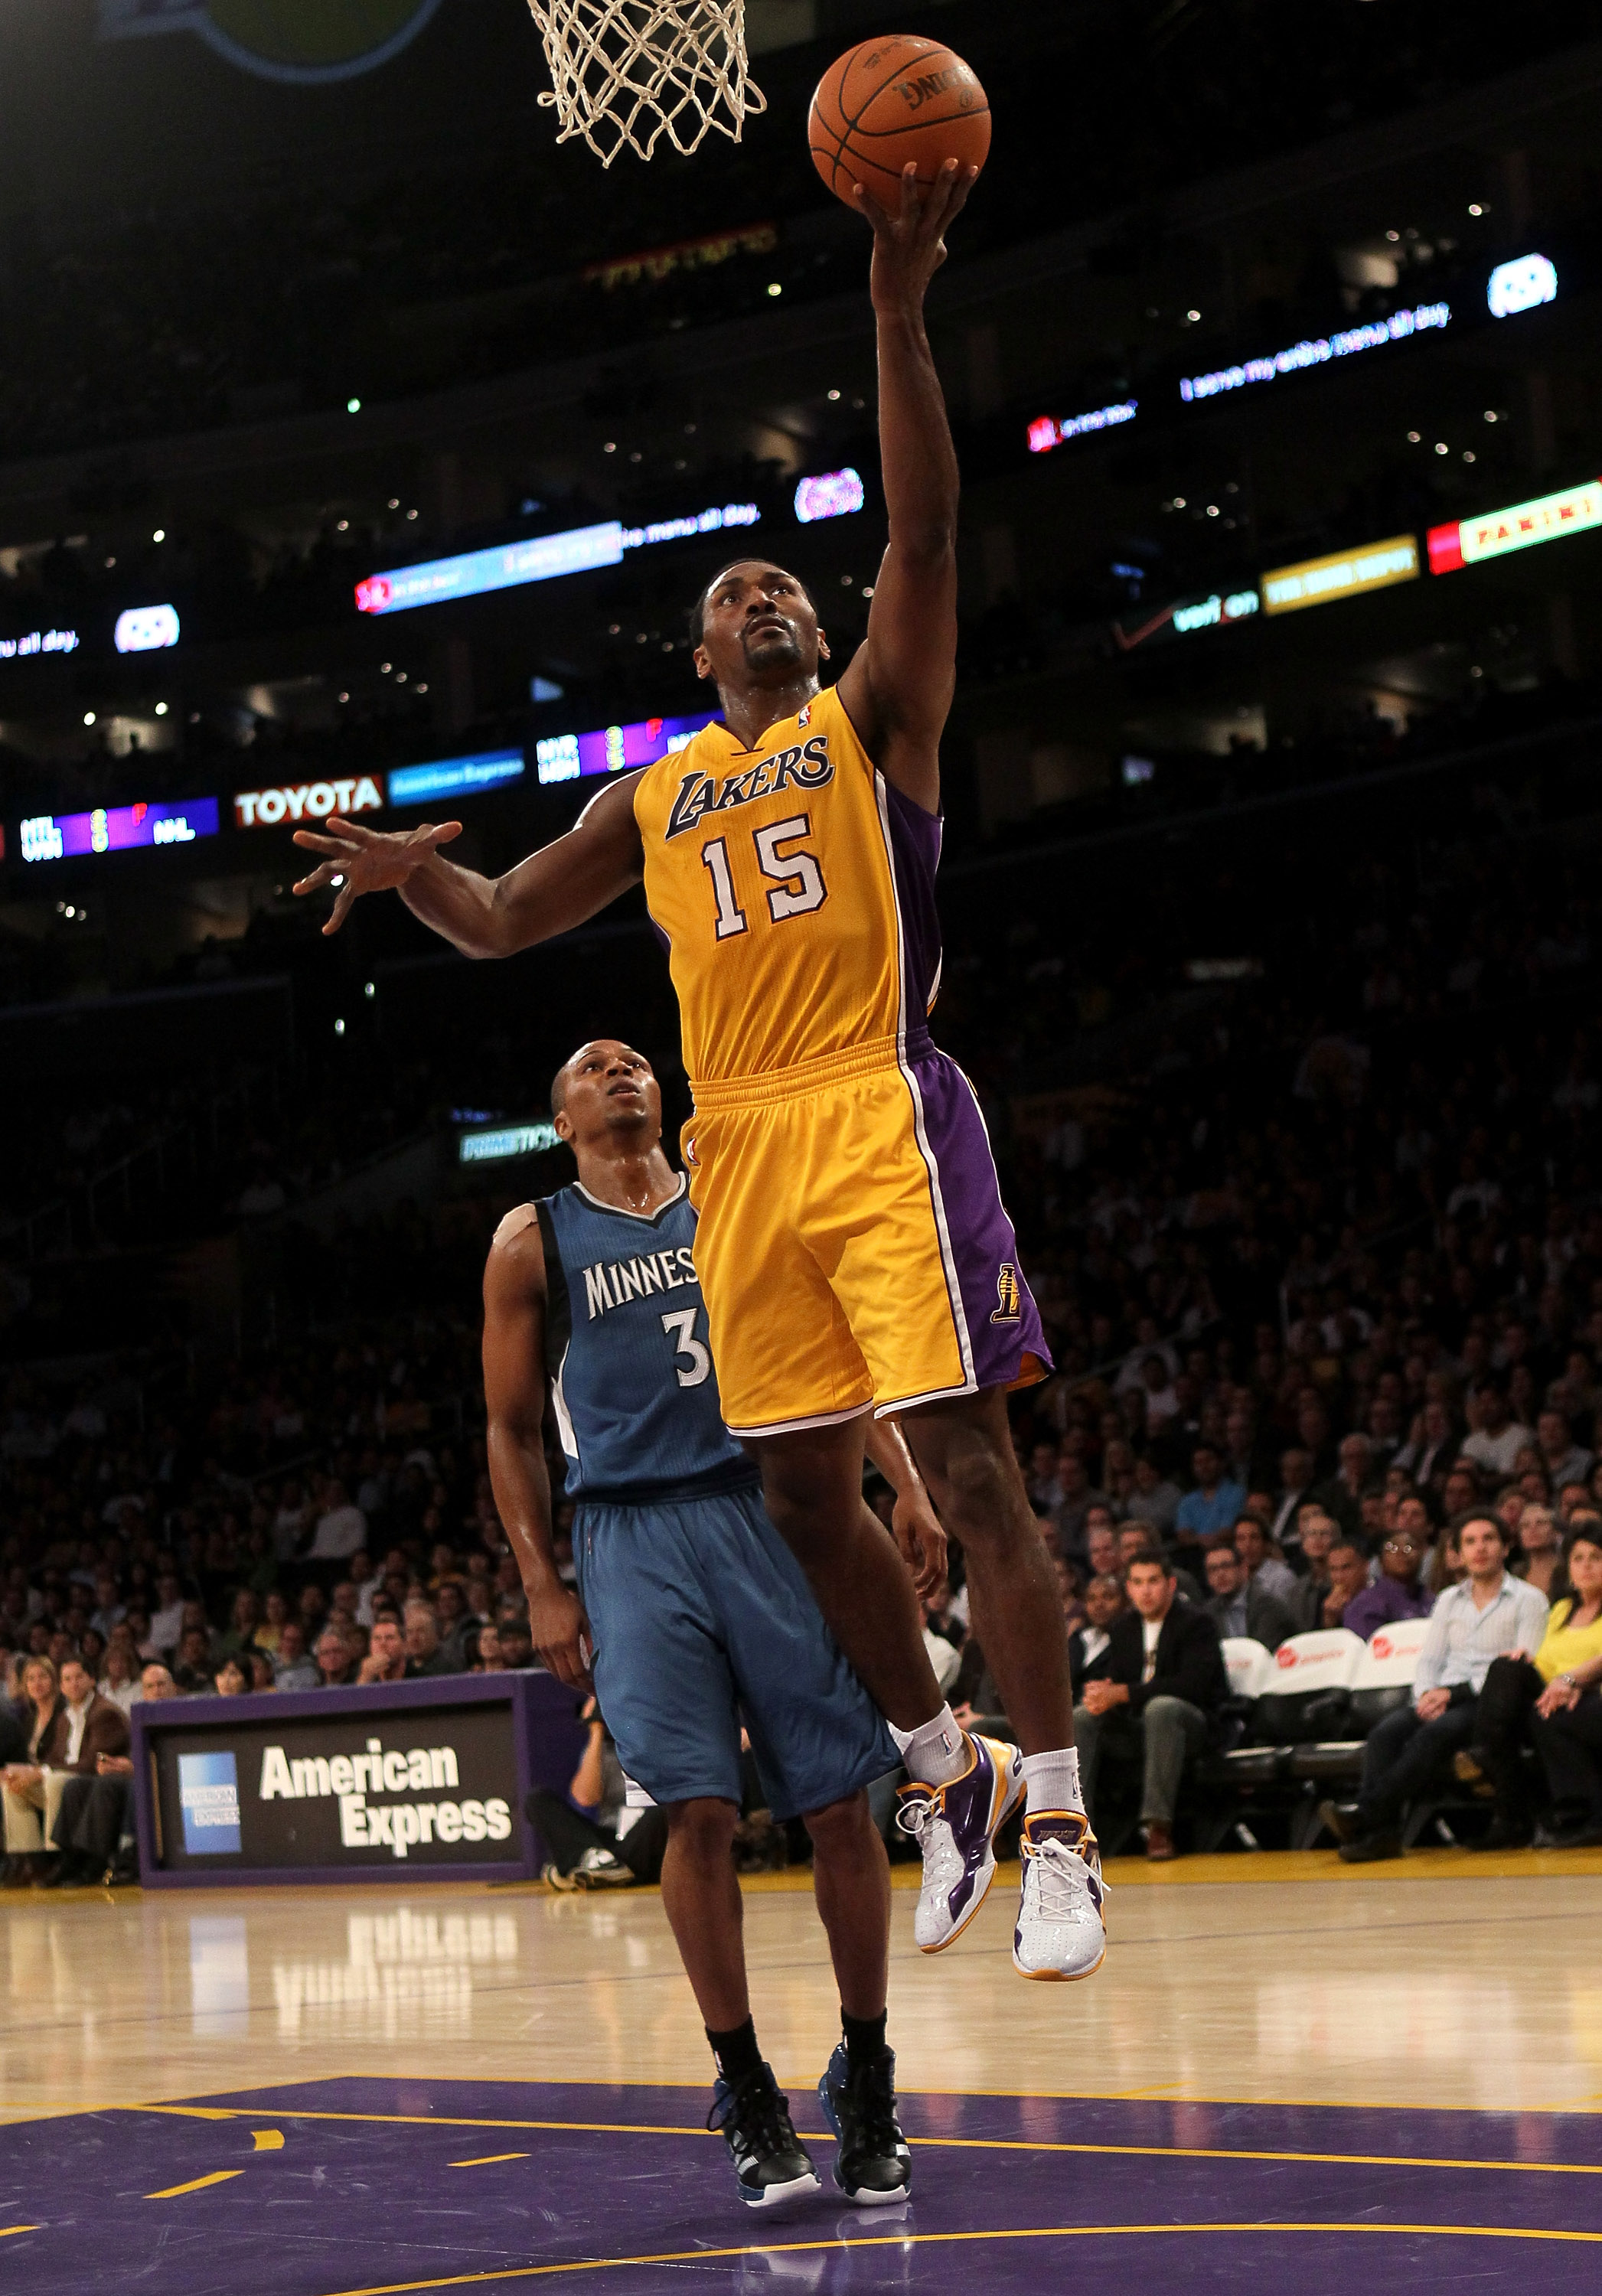 LOS ANGELES, CA - NOVEMBER 09:  Ron Artest #15 of the Los Angeles Lakers shoots over Sebastian Telfair #3 of the Minnesota Timberwolves at Staples Center on November 5, 2010 in Los Angeles, California.  The Lakers won 99-94.  NOTE TO USER: User expressly